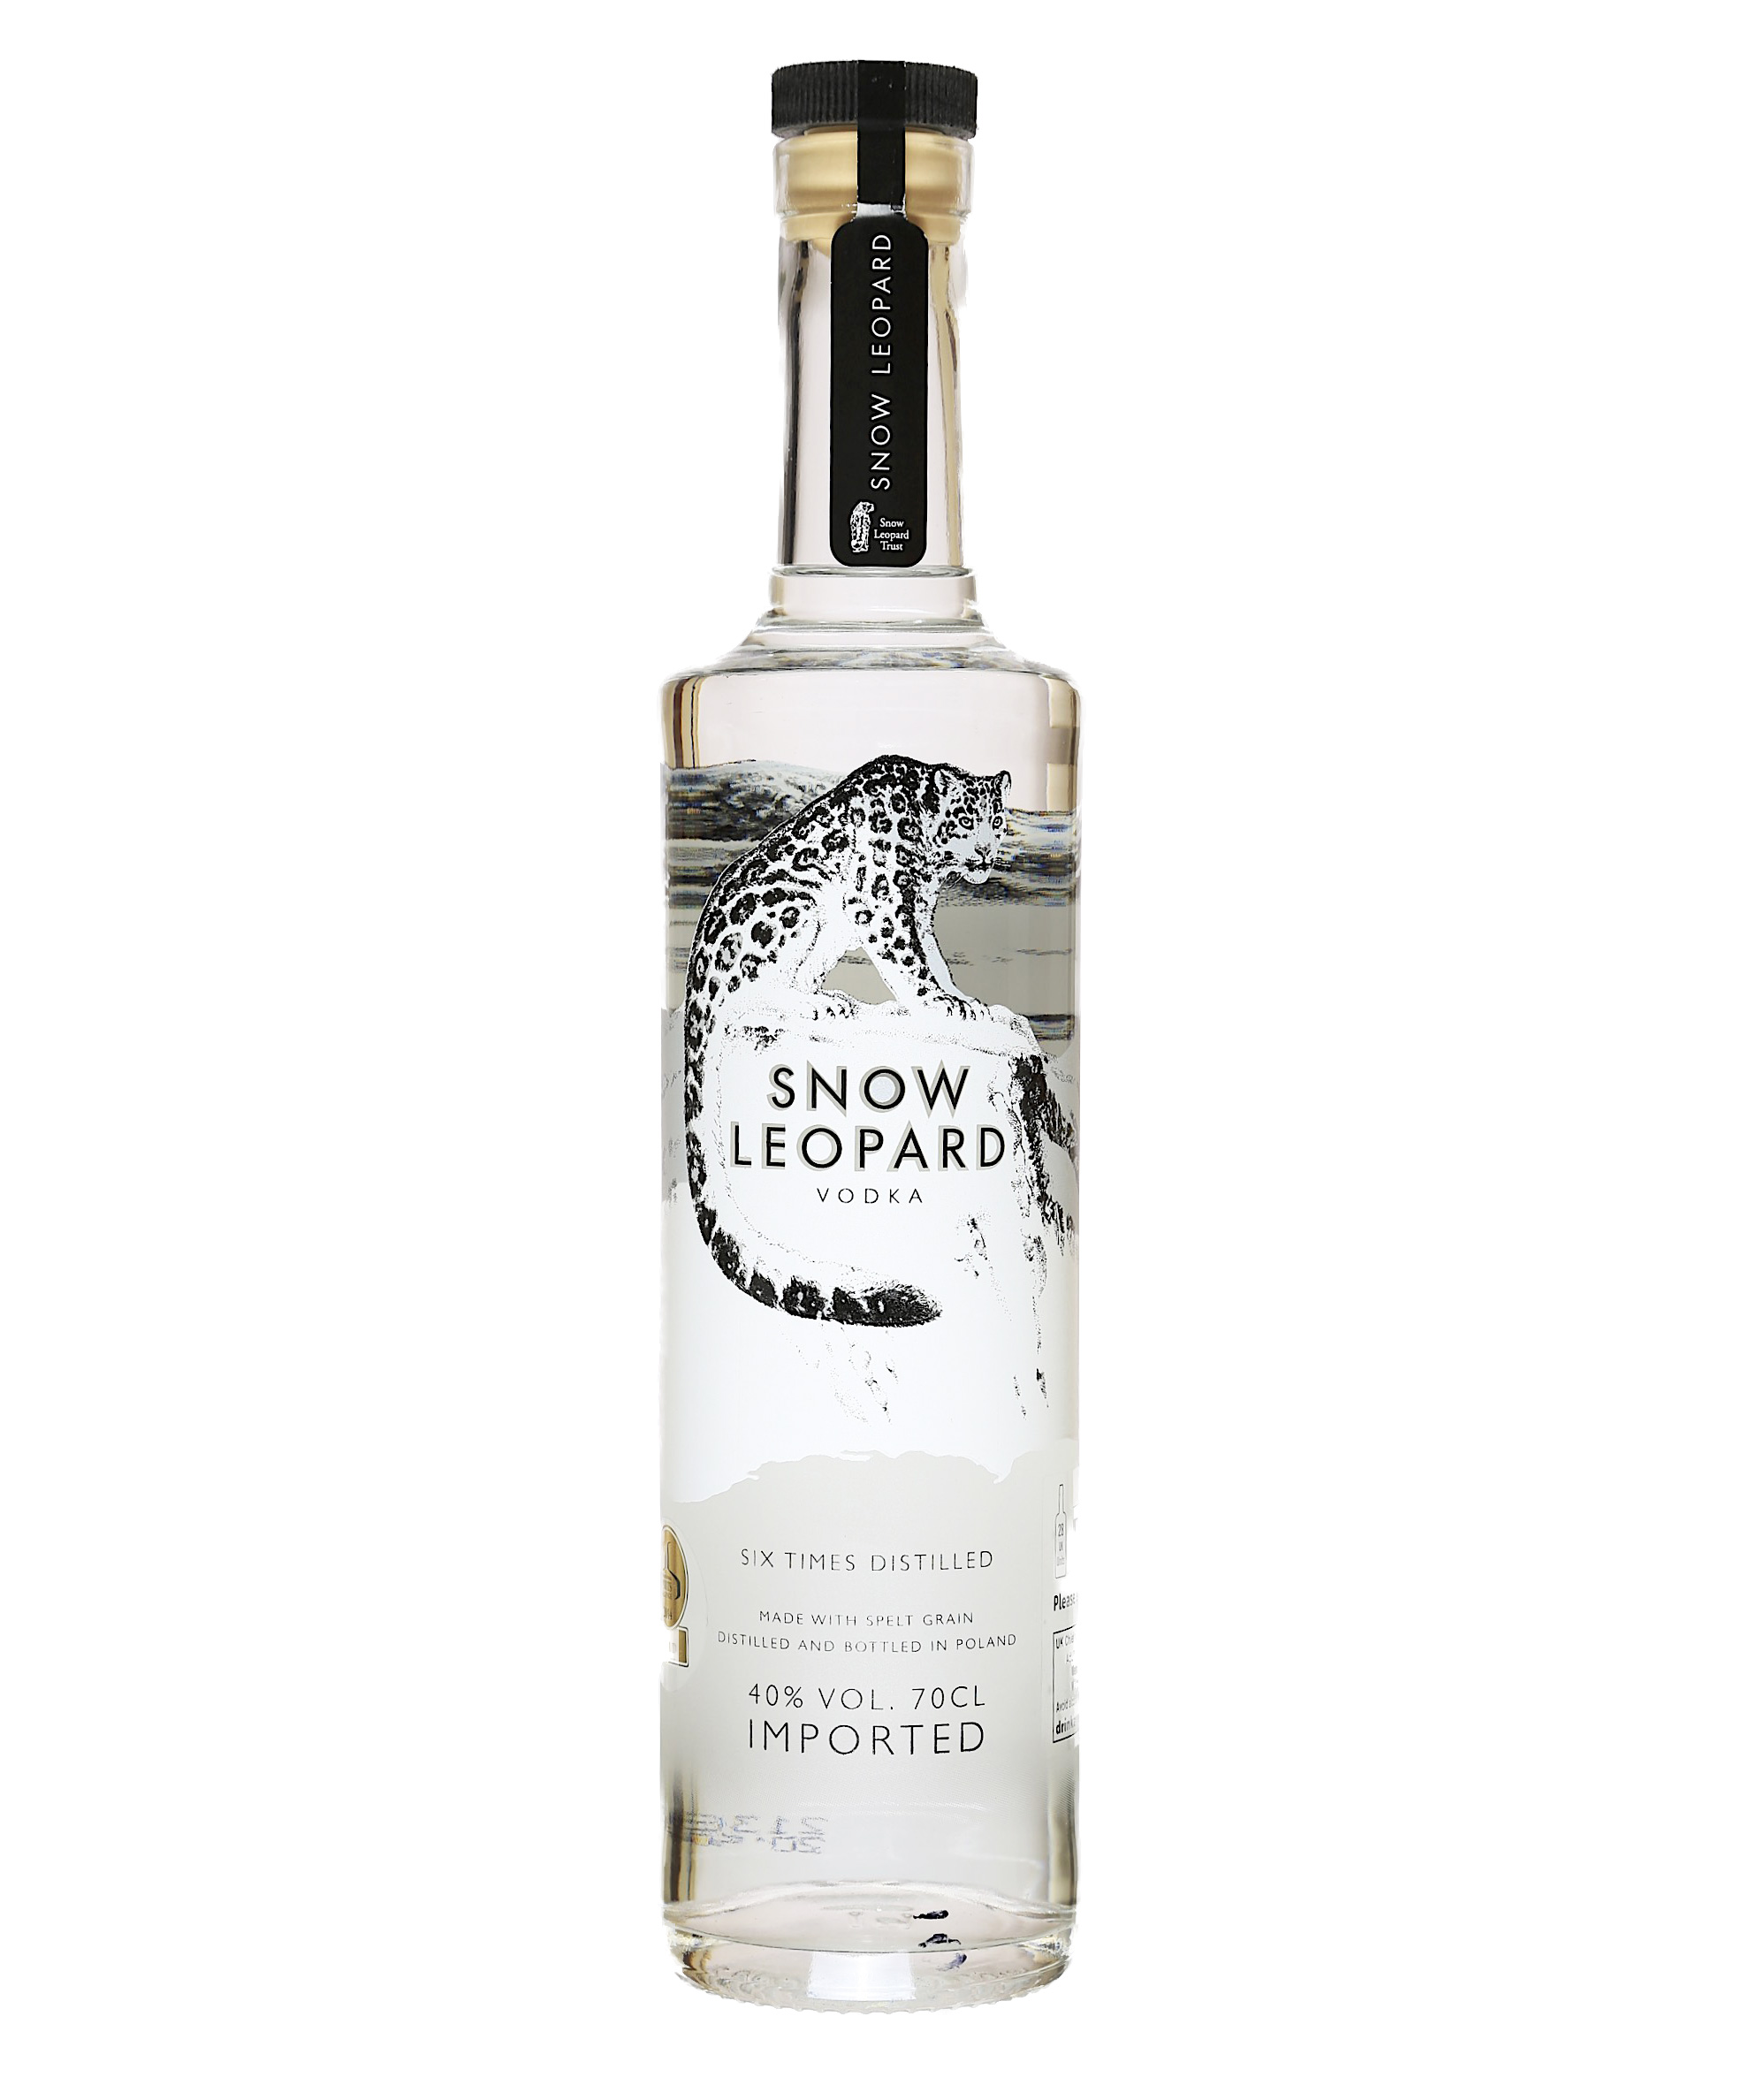 SNOW LEOPARD VODKA 70CL